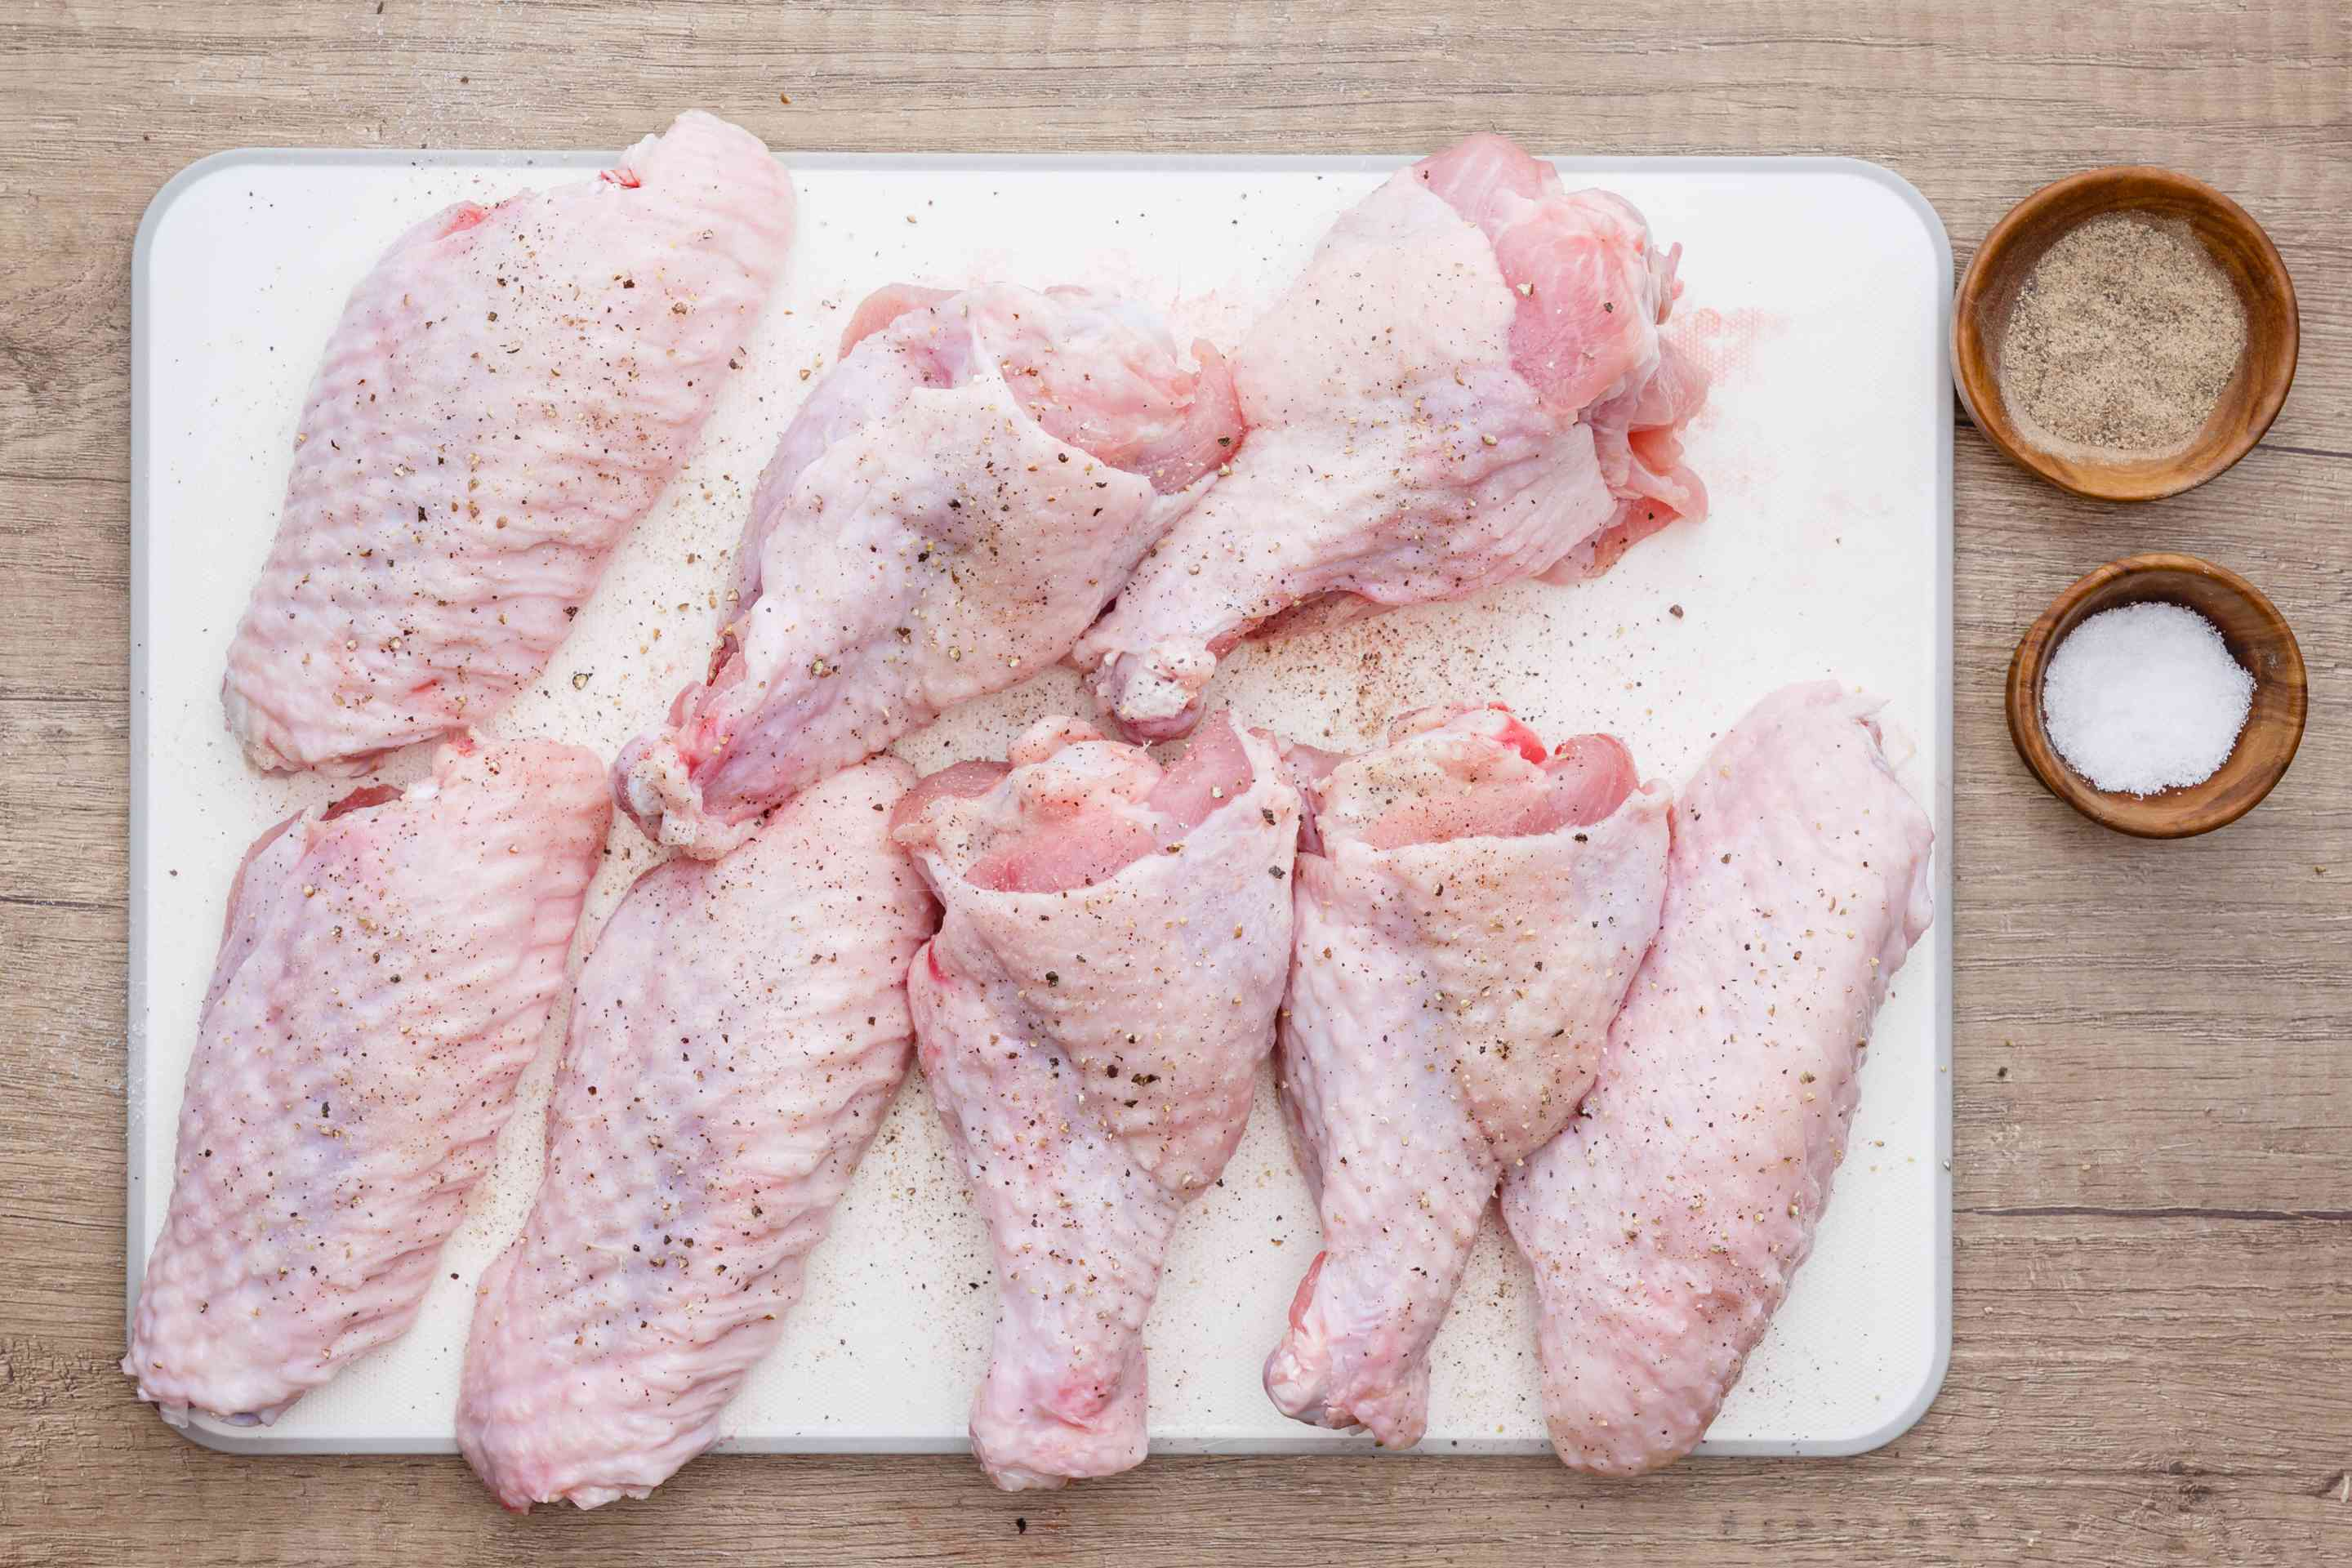 Turkey wings sprinkled with salt and pepper